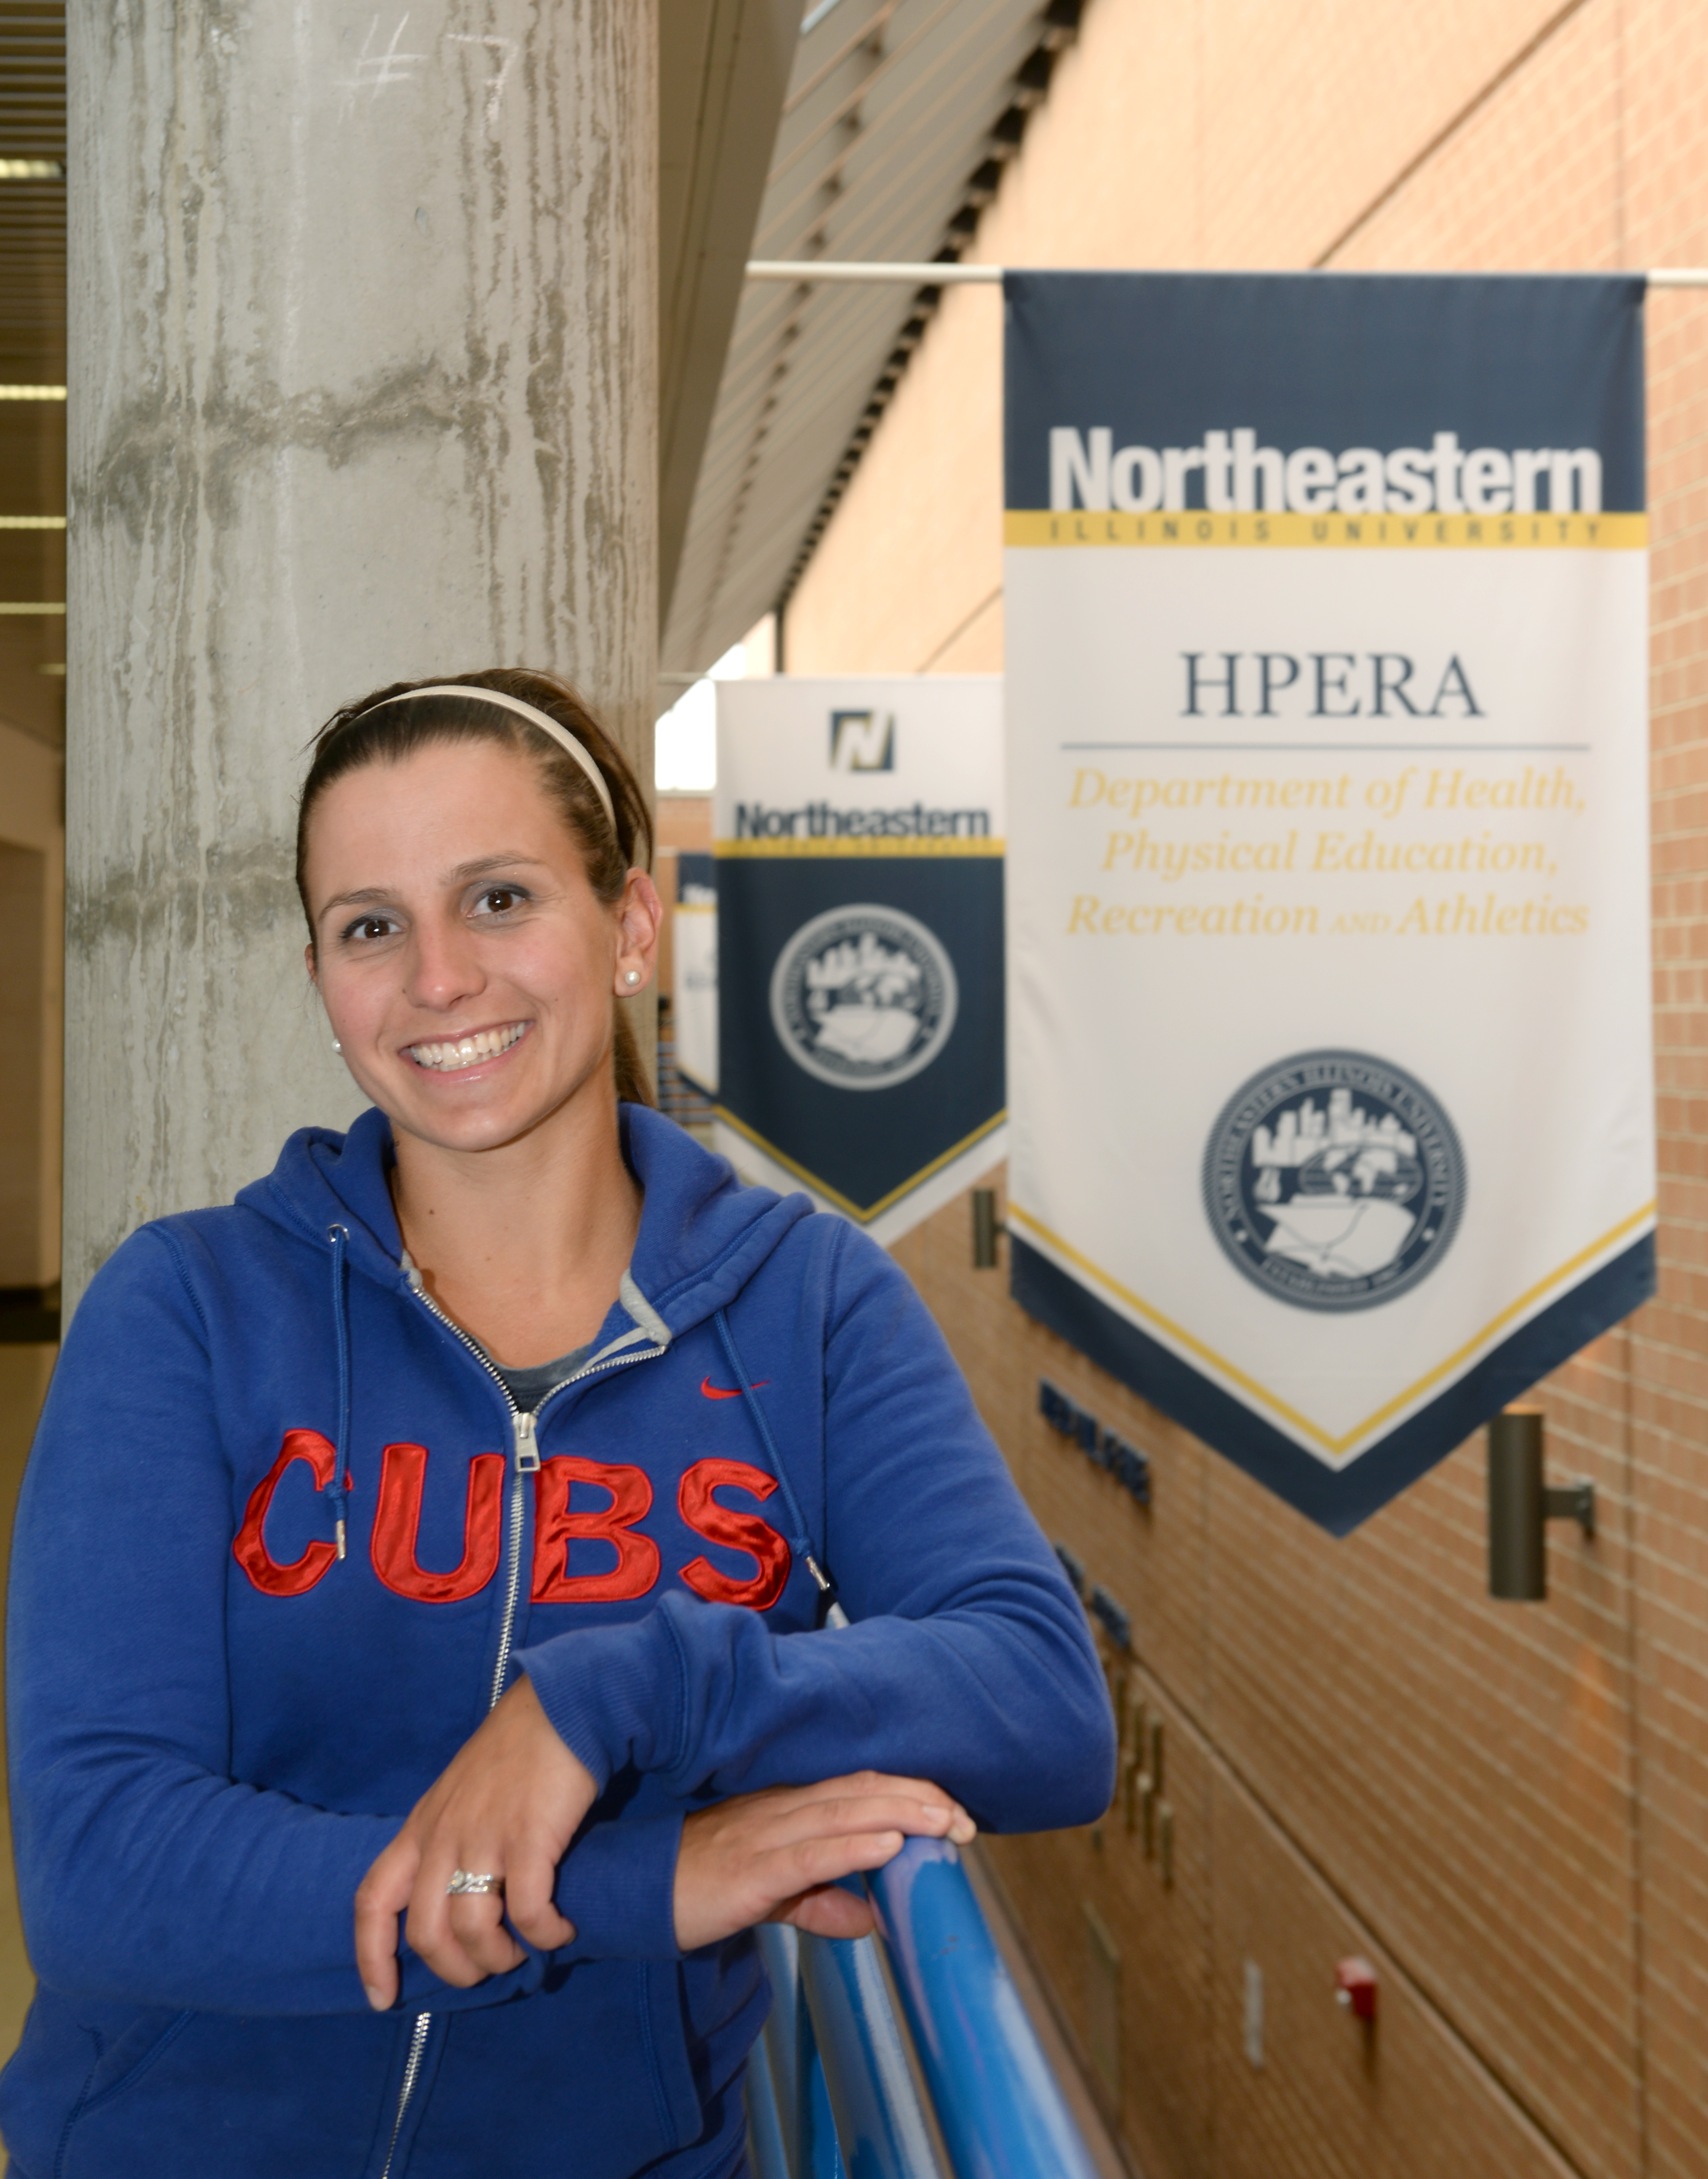 Gina Ridge, Fall 2015 NEIUAA Internship Scholarship recipient, poses in front of two Northeastern signs.